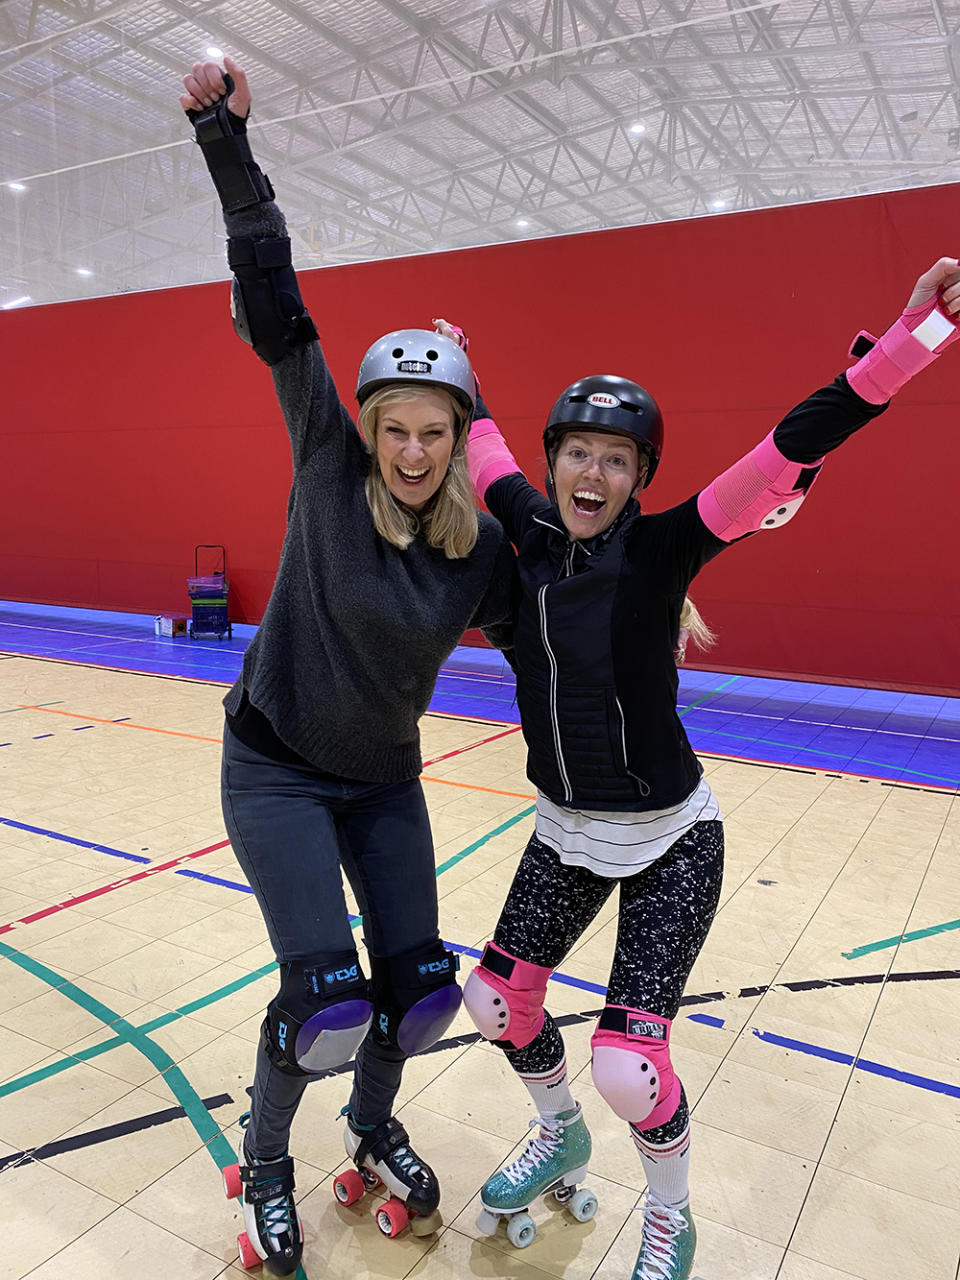 Melissa Doyle and Naima Brown wear roller skates and protective gear while recording episode six of the podcast Age Against The Machine